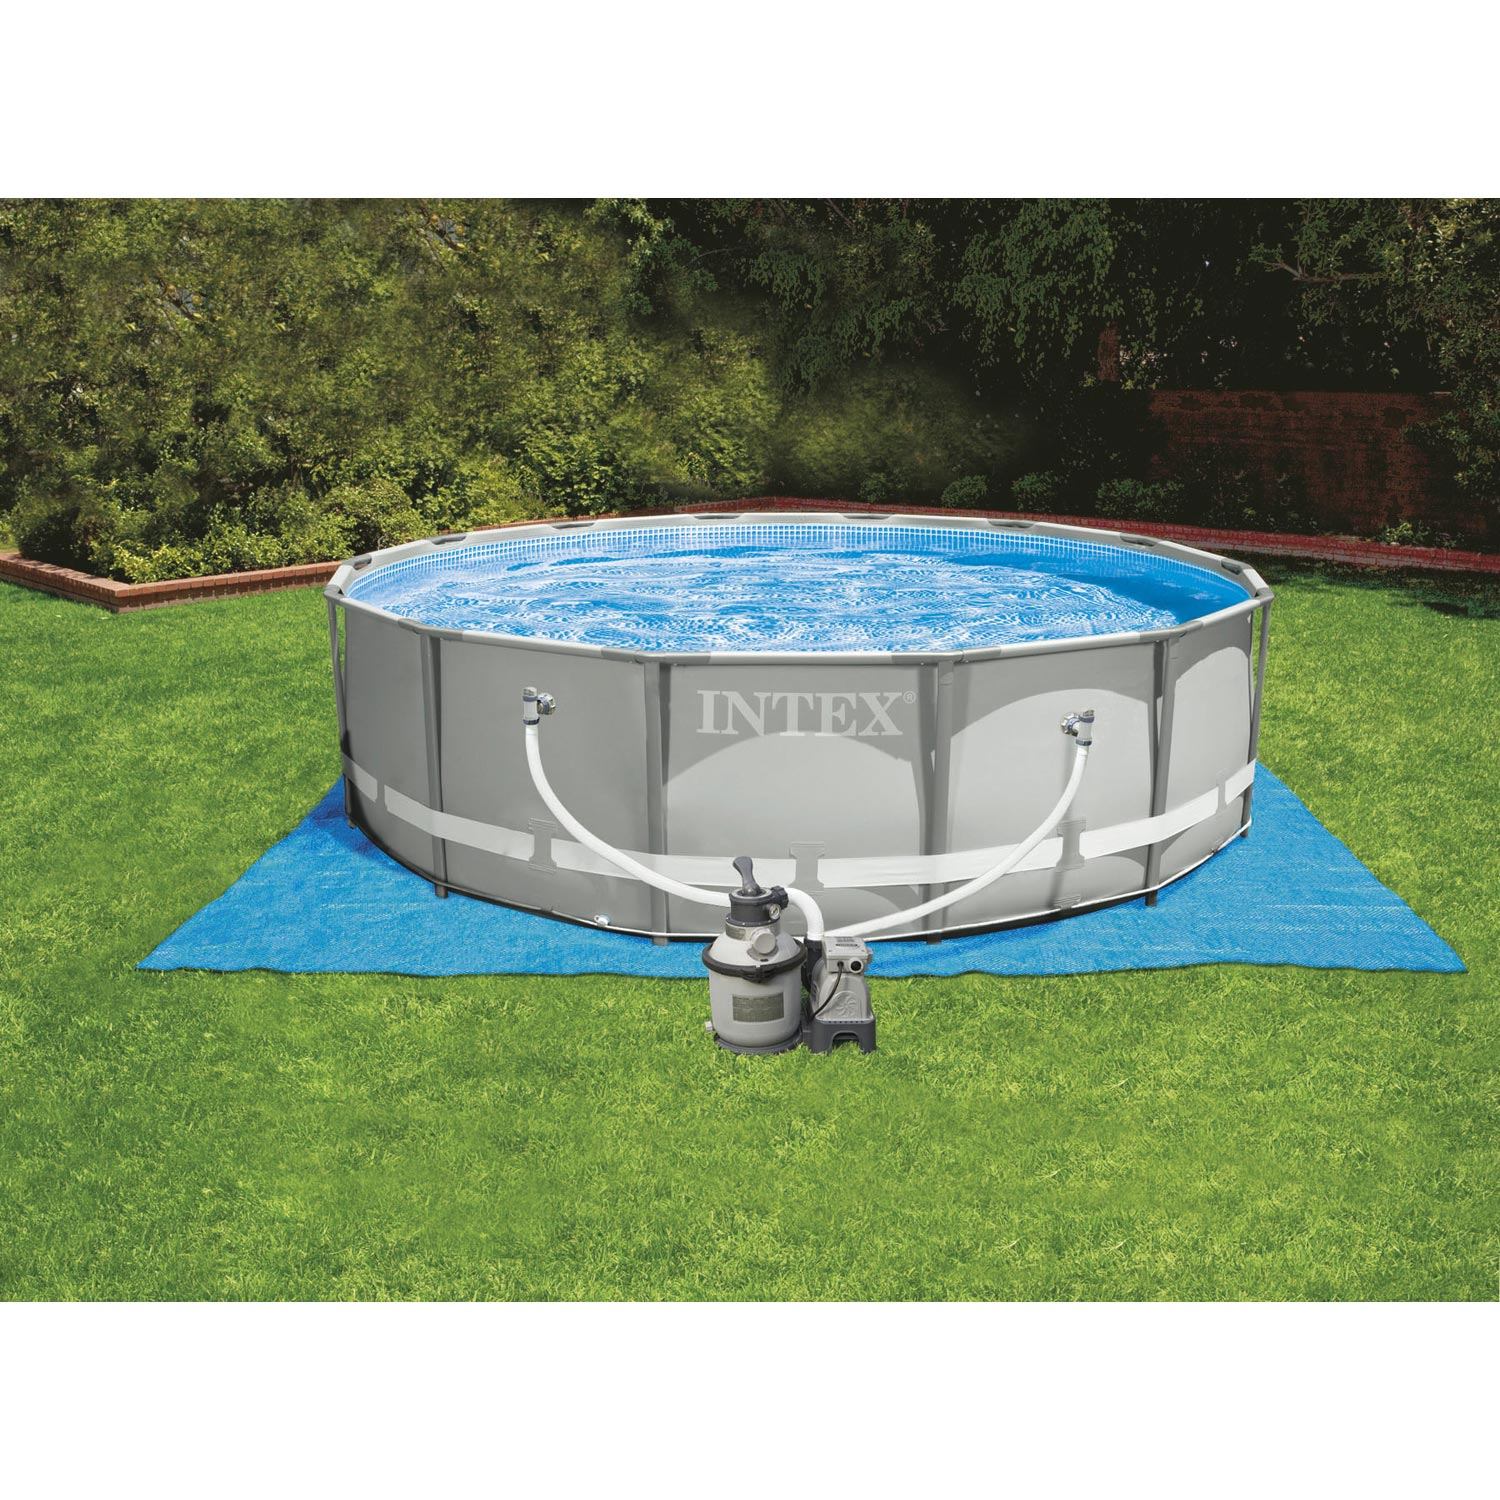 Piscine hors sol autoportante tubulaire ultra frame intex for Piscine urbaine leroy merlin